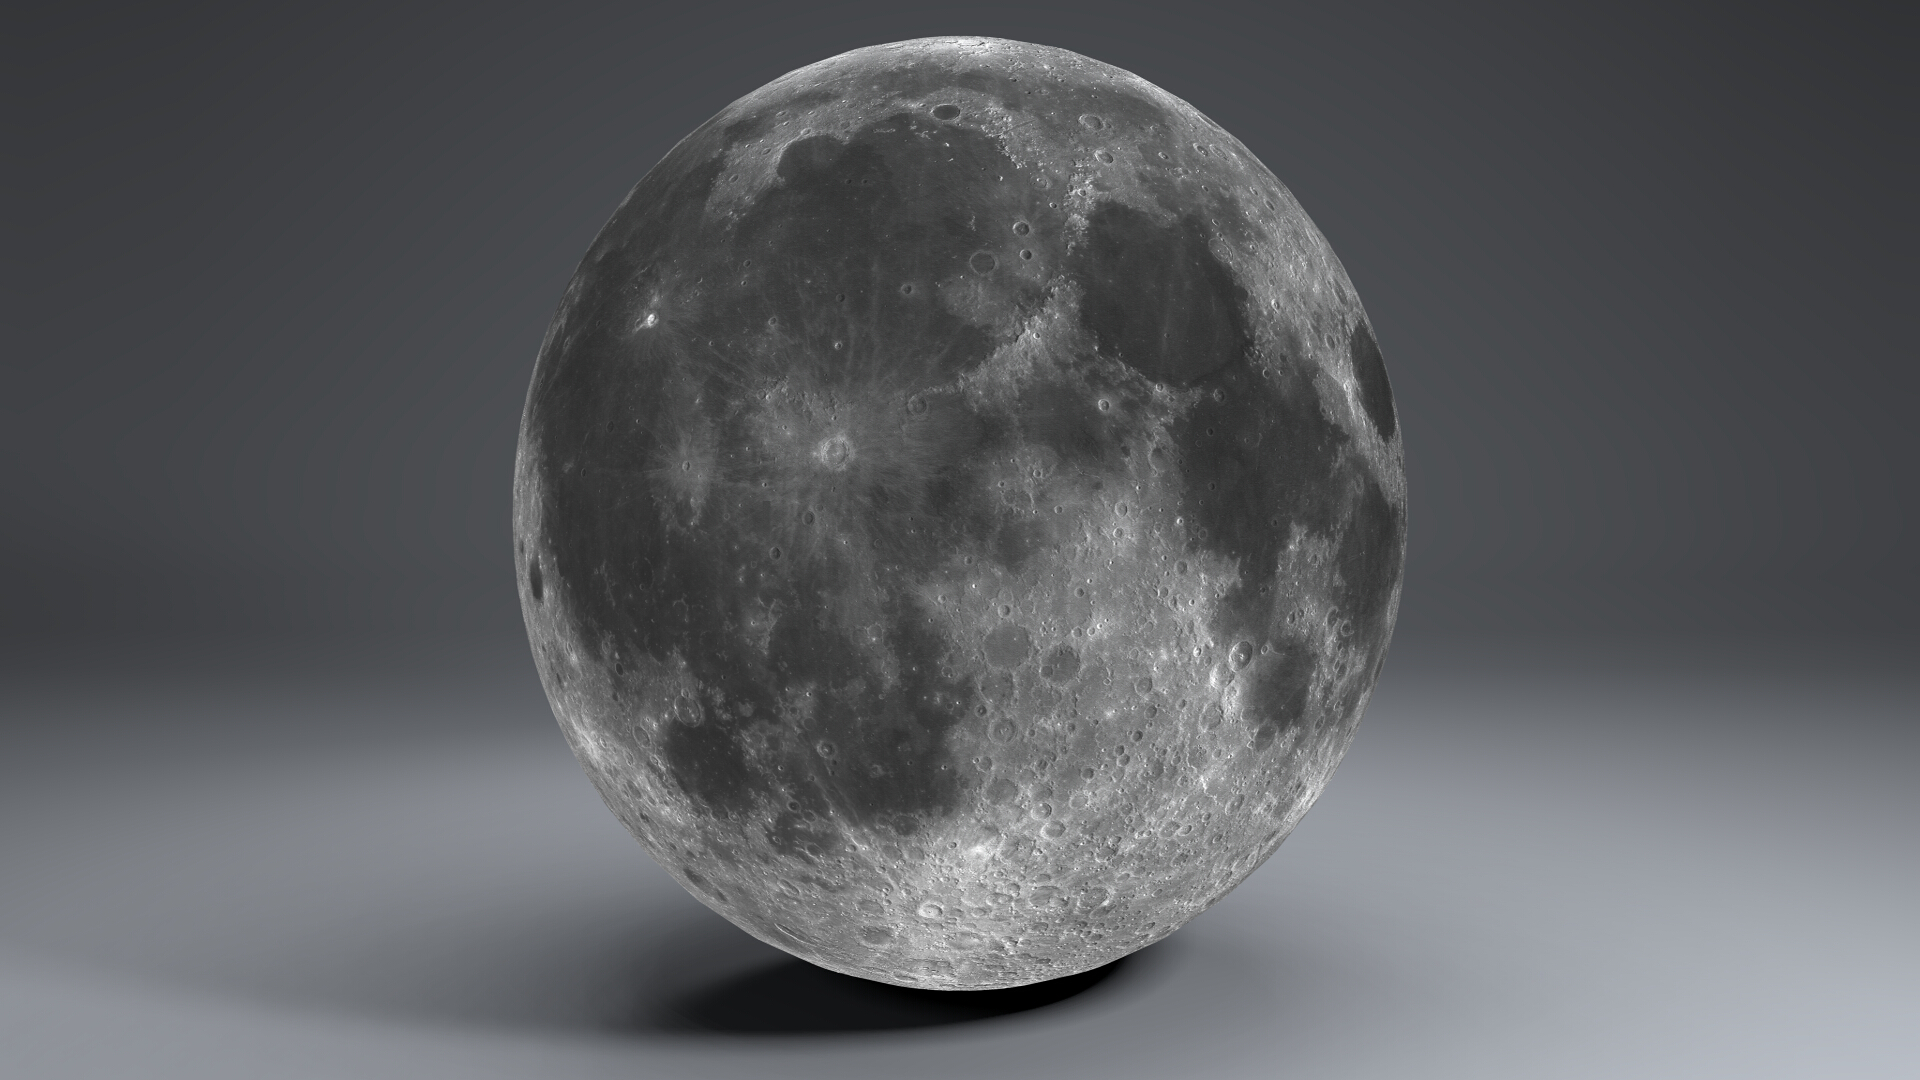 moon globe 23k 3d model 3ds fbx blend dae obj 222138